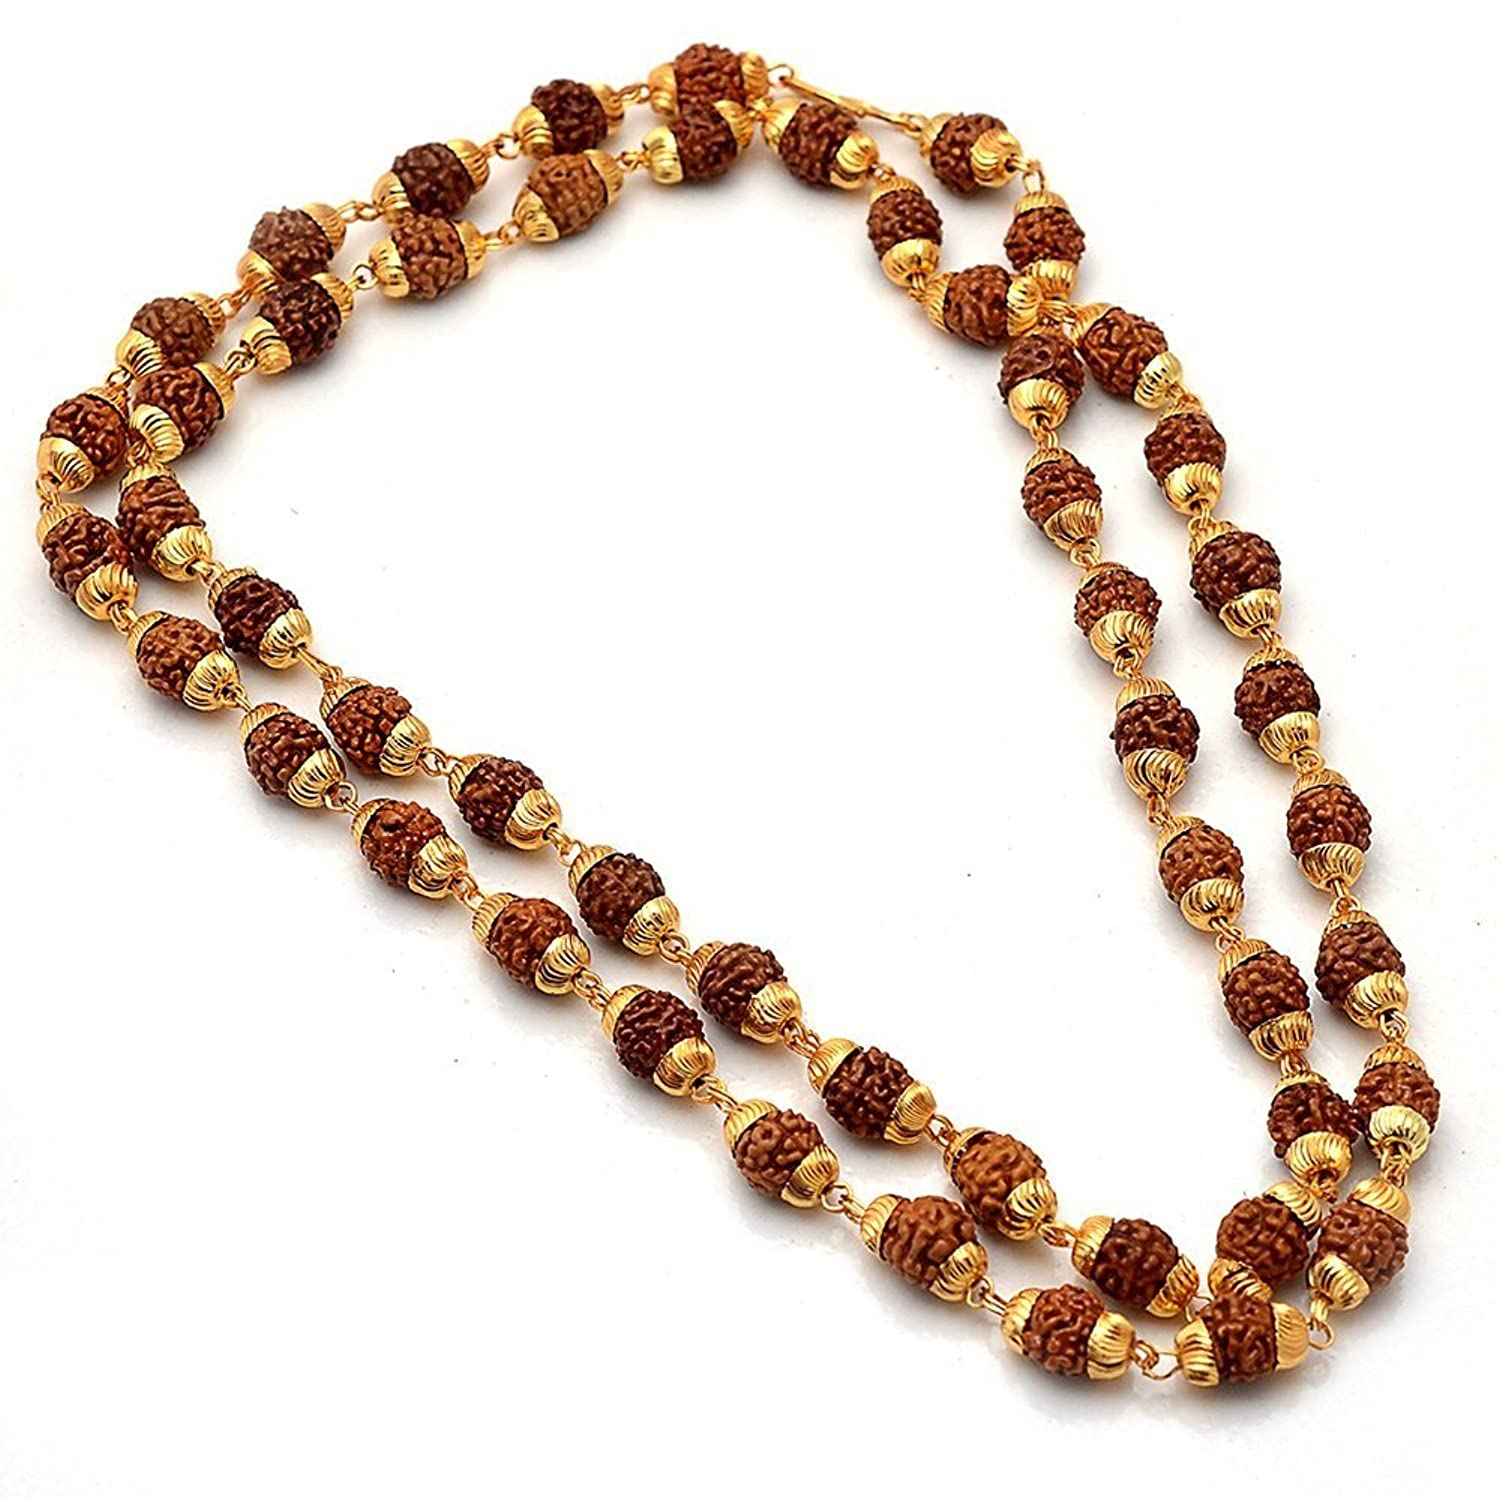 Spangel Fashion RUDRAKSH MALA Shiva God gold plated rudraksh mala chain long 24 inches